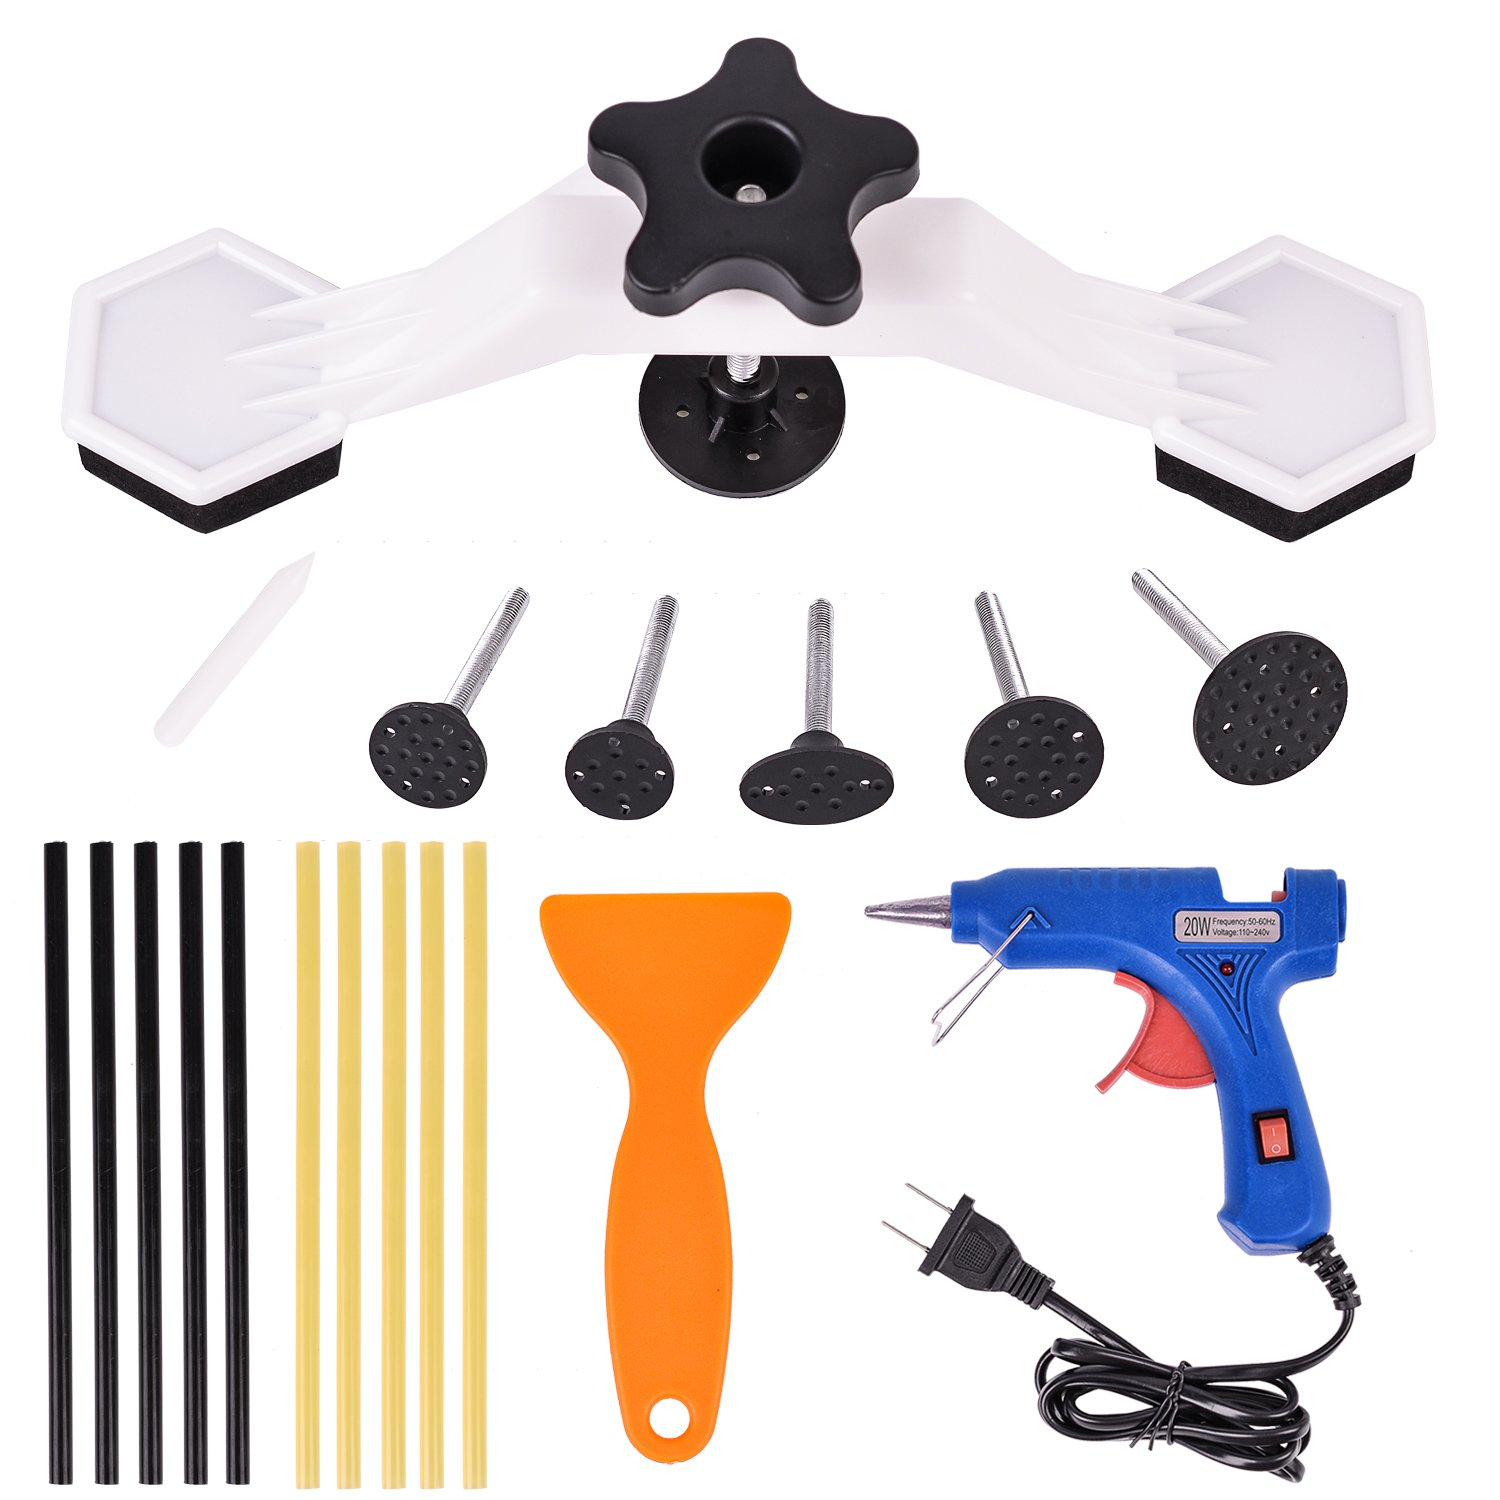 Queenti Car Body Dent Bridge Puller Tool Kits, Pop a Dent Paintless Ding Repair PDR Tools with 20w Hot Melt Glue Gun and 10pcs Glue Stick, Glue Shovel for Car Auto Truck Motorcycle Dent Removal